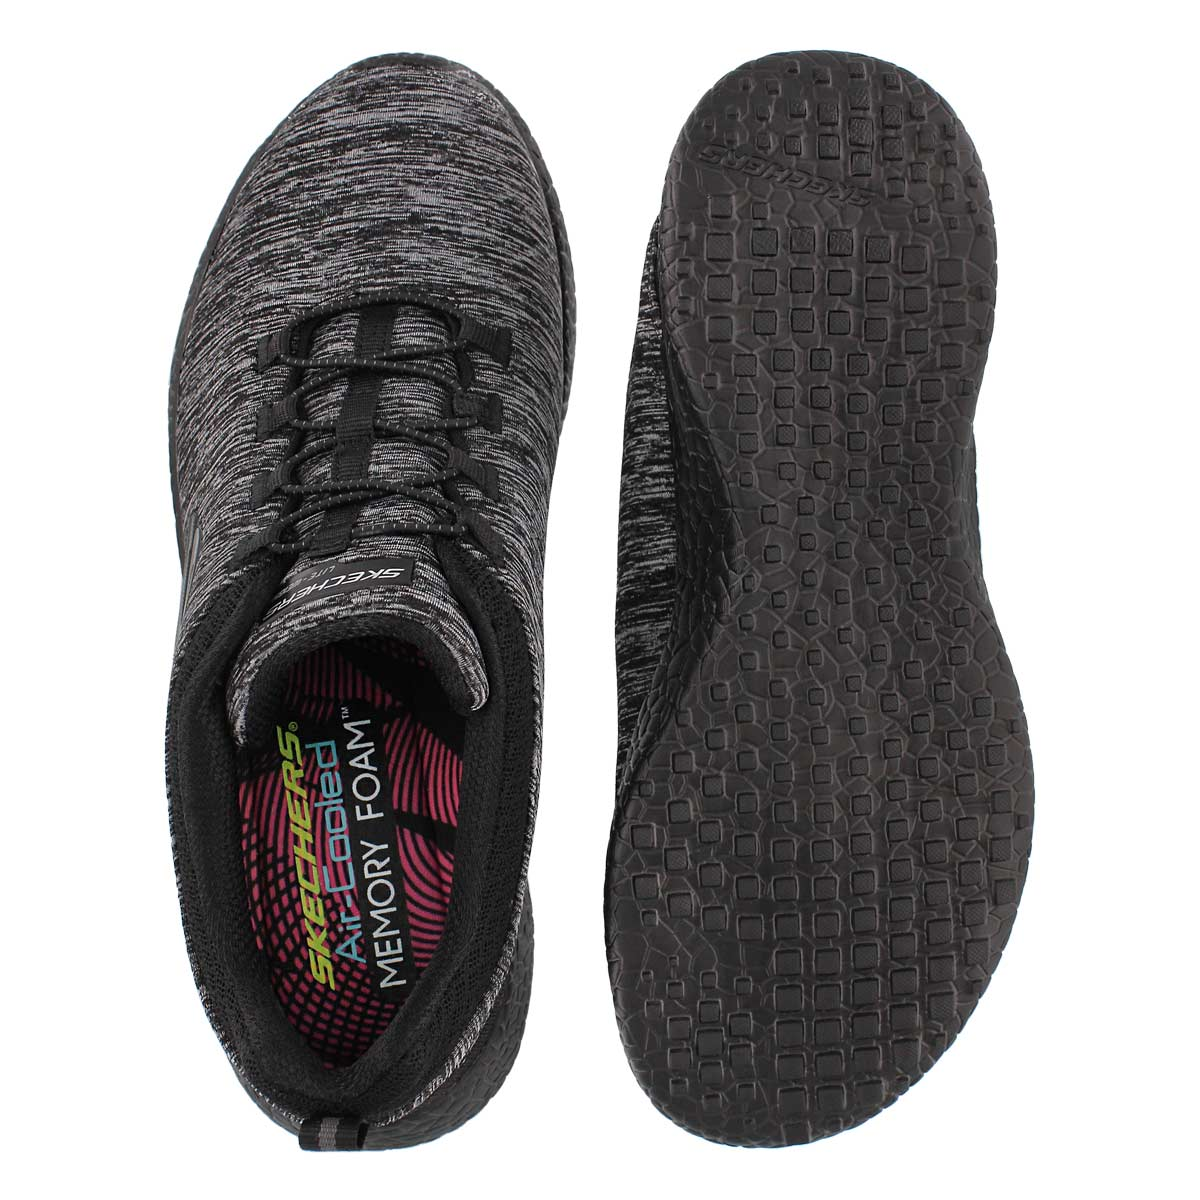 Lds Equinox black bungee running shoe